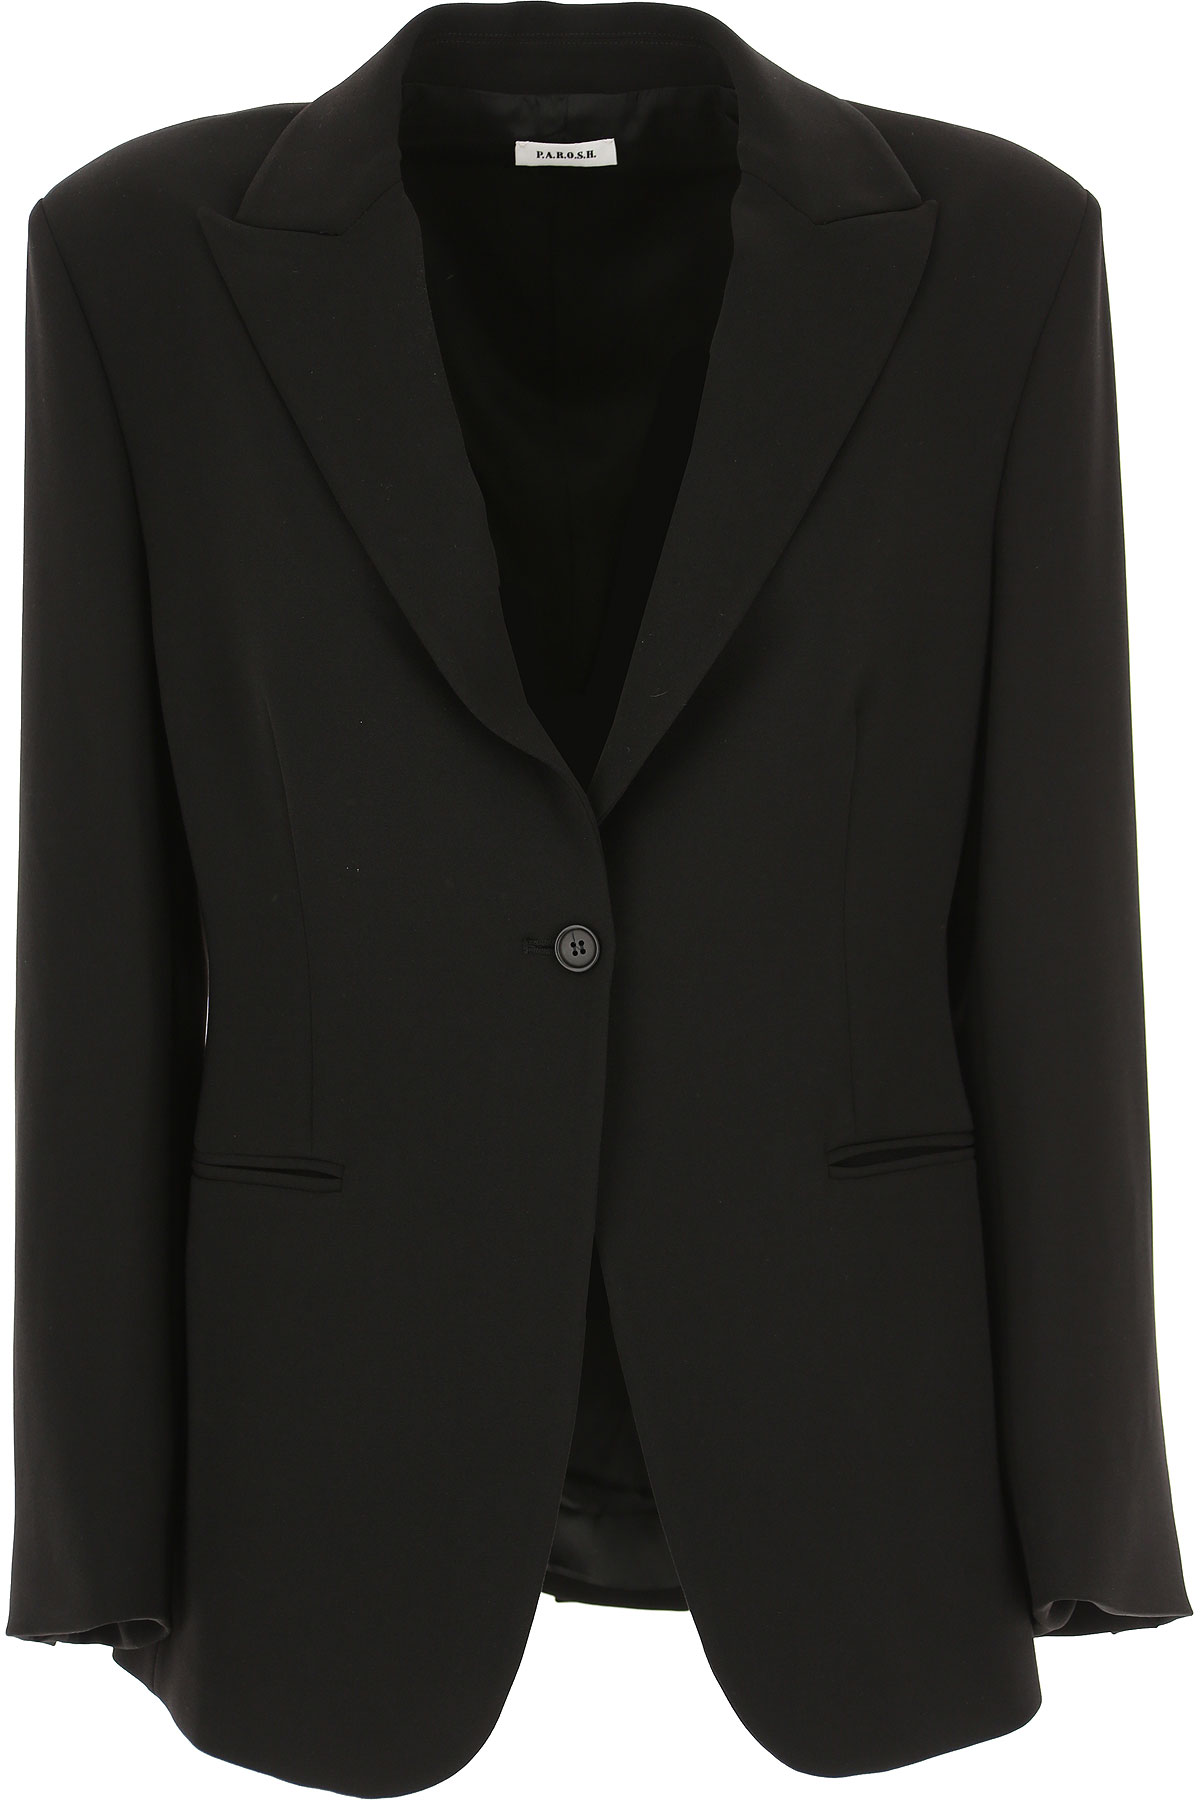 P.A.R.O.S.H. Blazer for Women On Sale, Black, polyester, 2019, 2 4 6